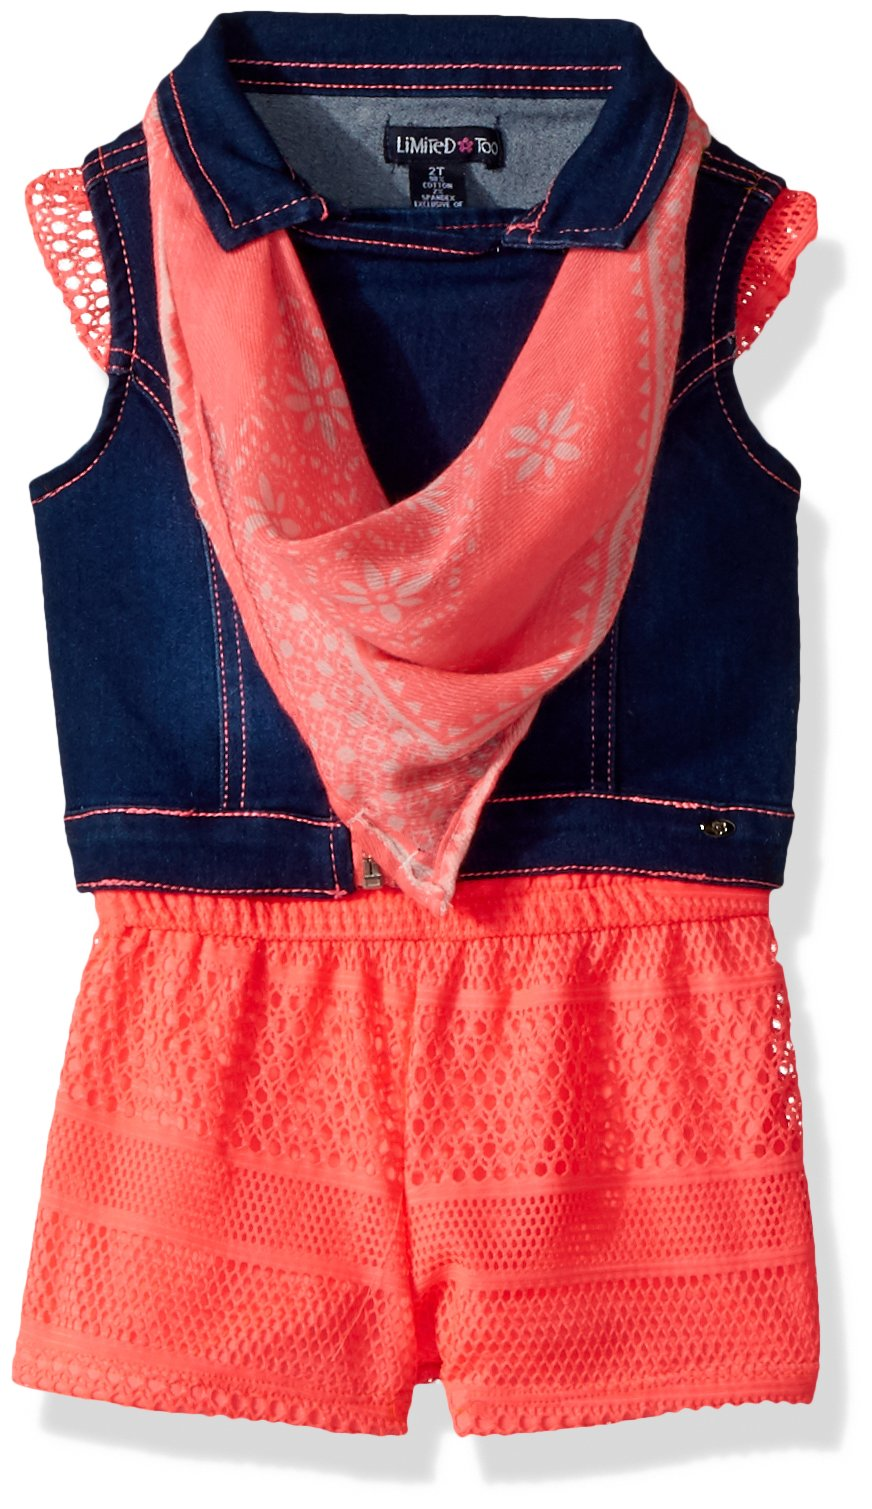 Limited Too Girls' Toddler' Romper, Denim Motorcycle Vest with Bandana Neon Coral, 2T